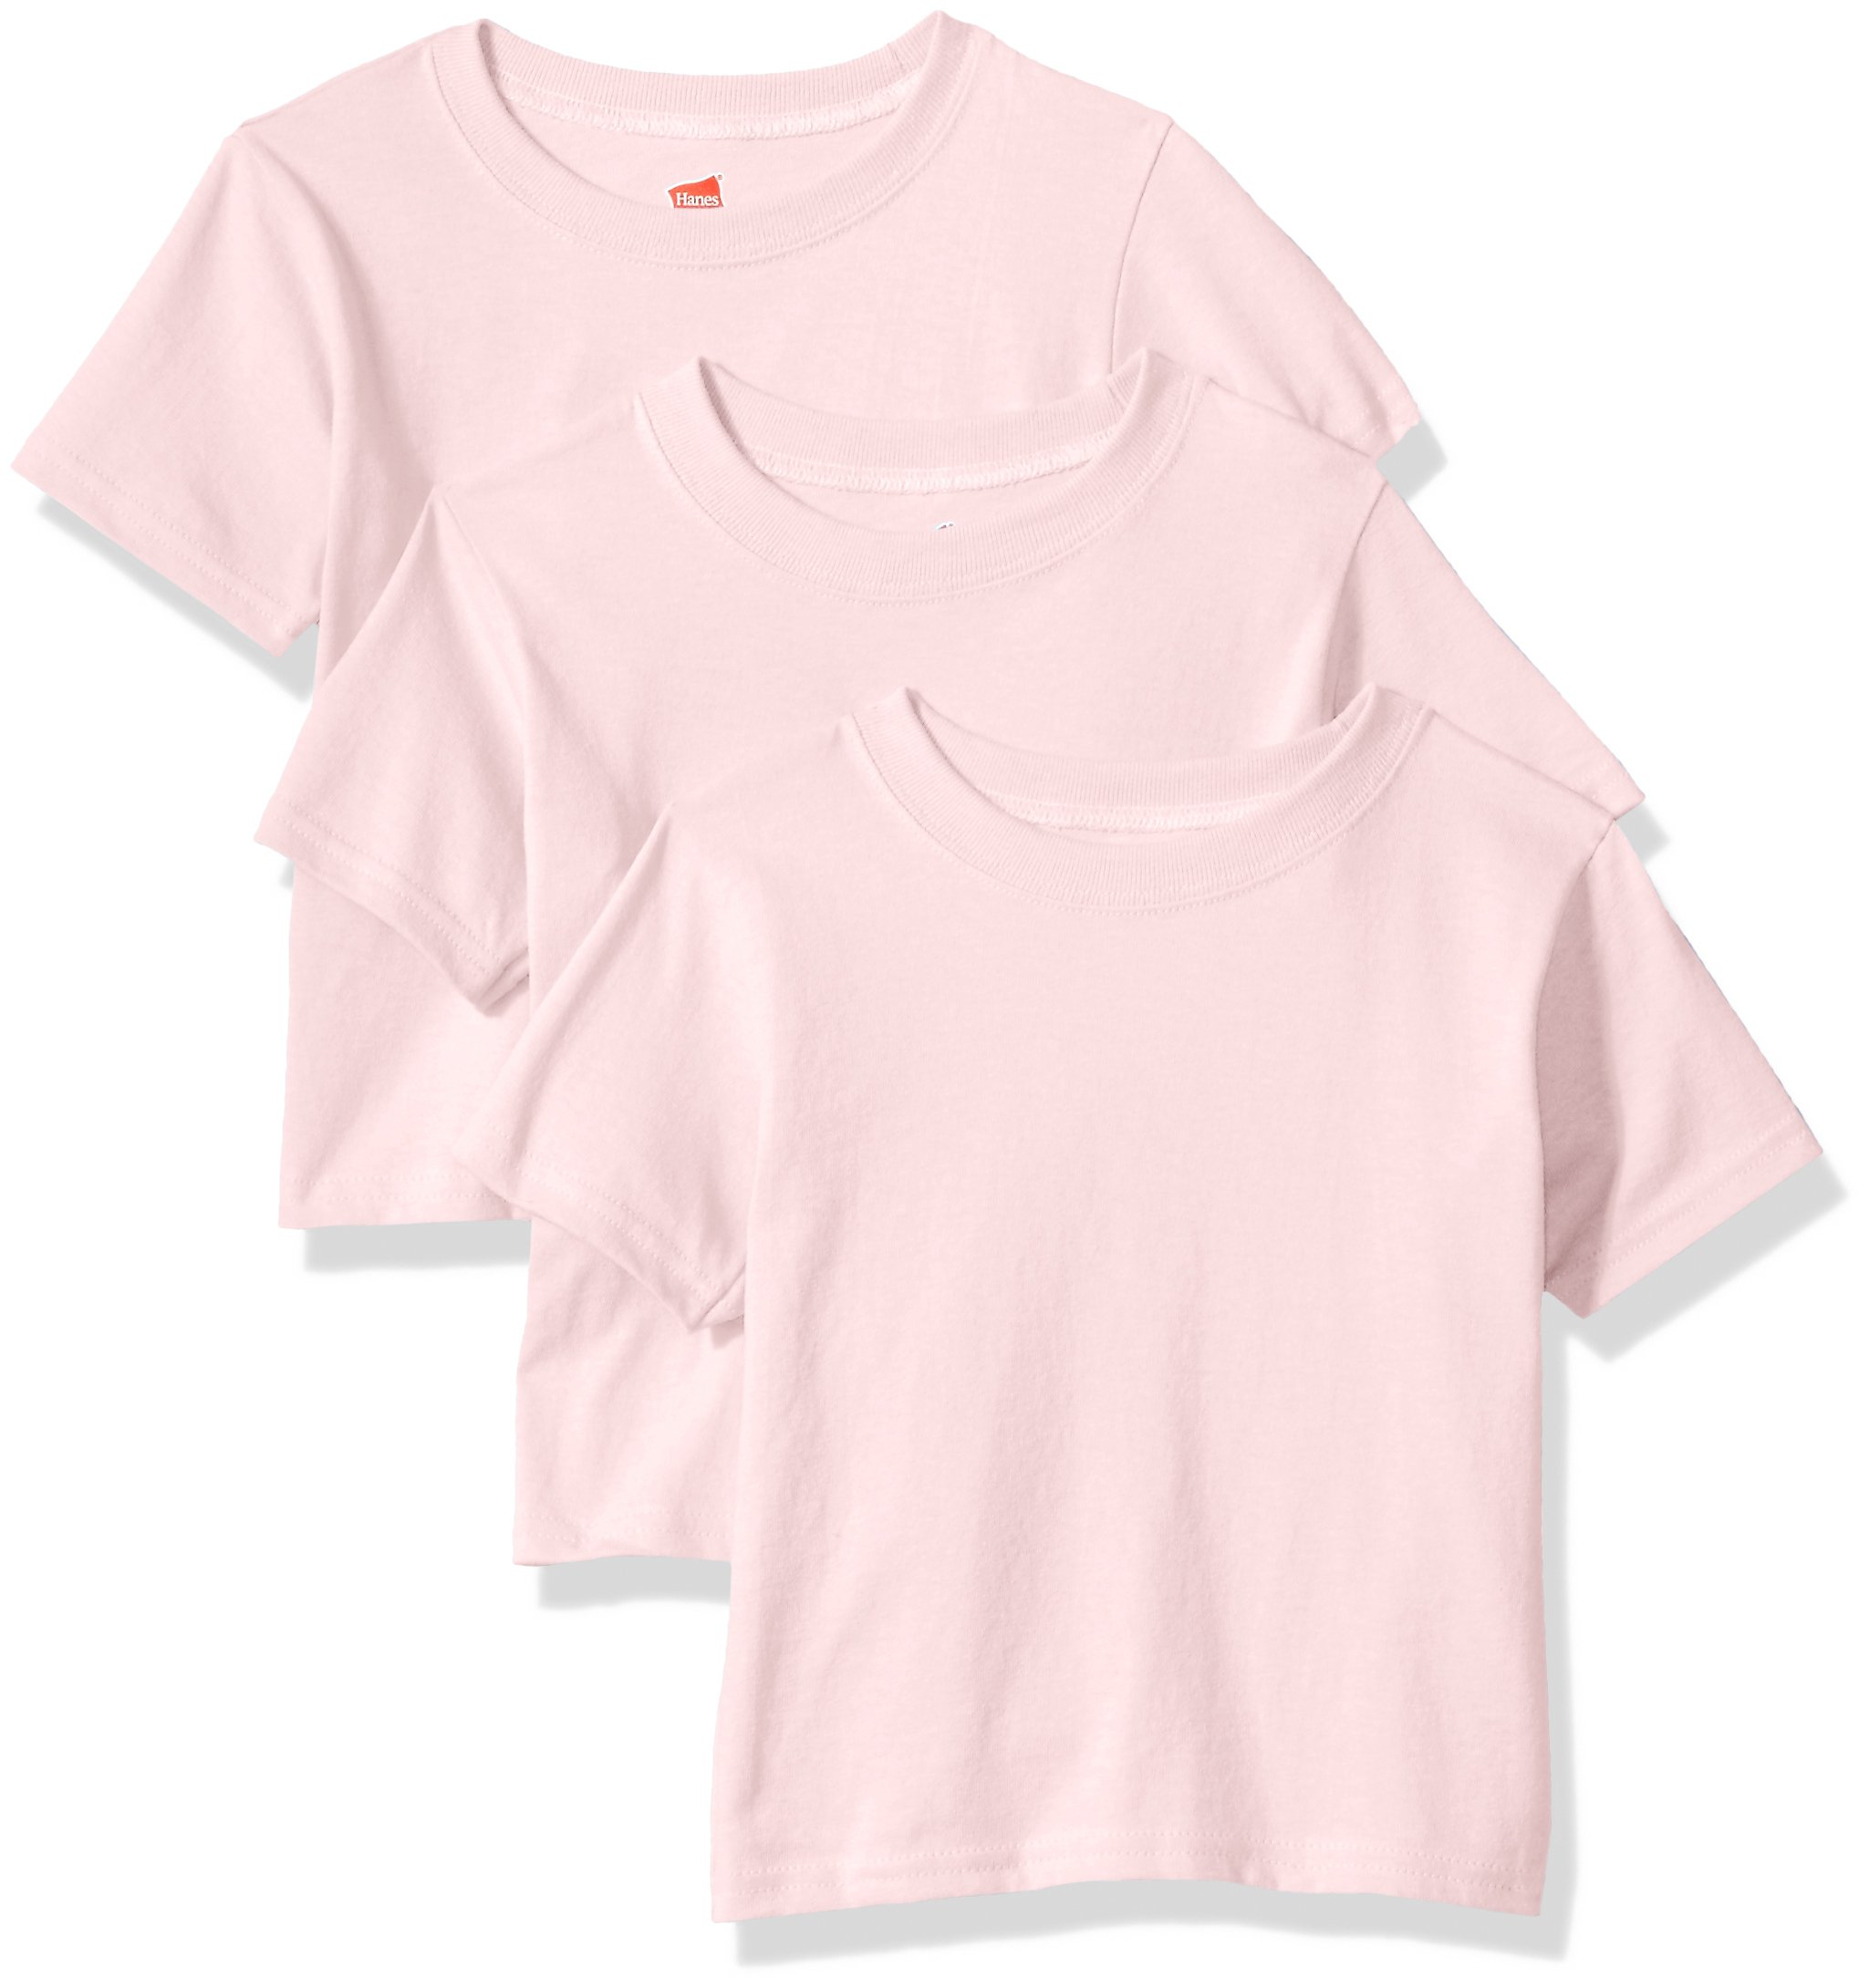 Hanes Boys Toddler ComfortSoft Tee (Pack of 3)